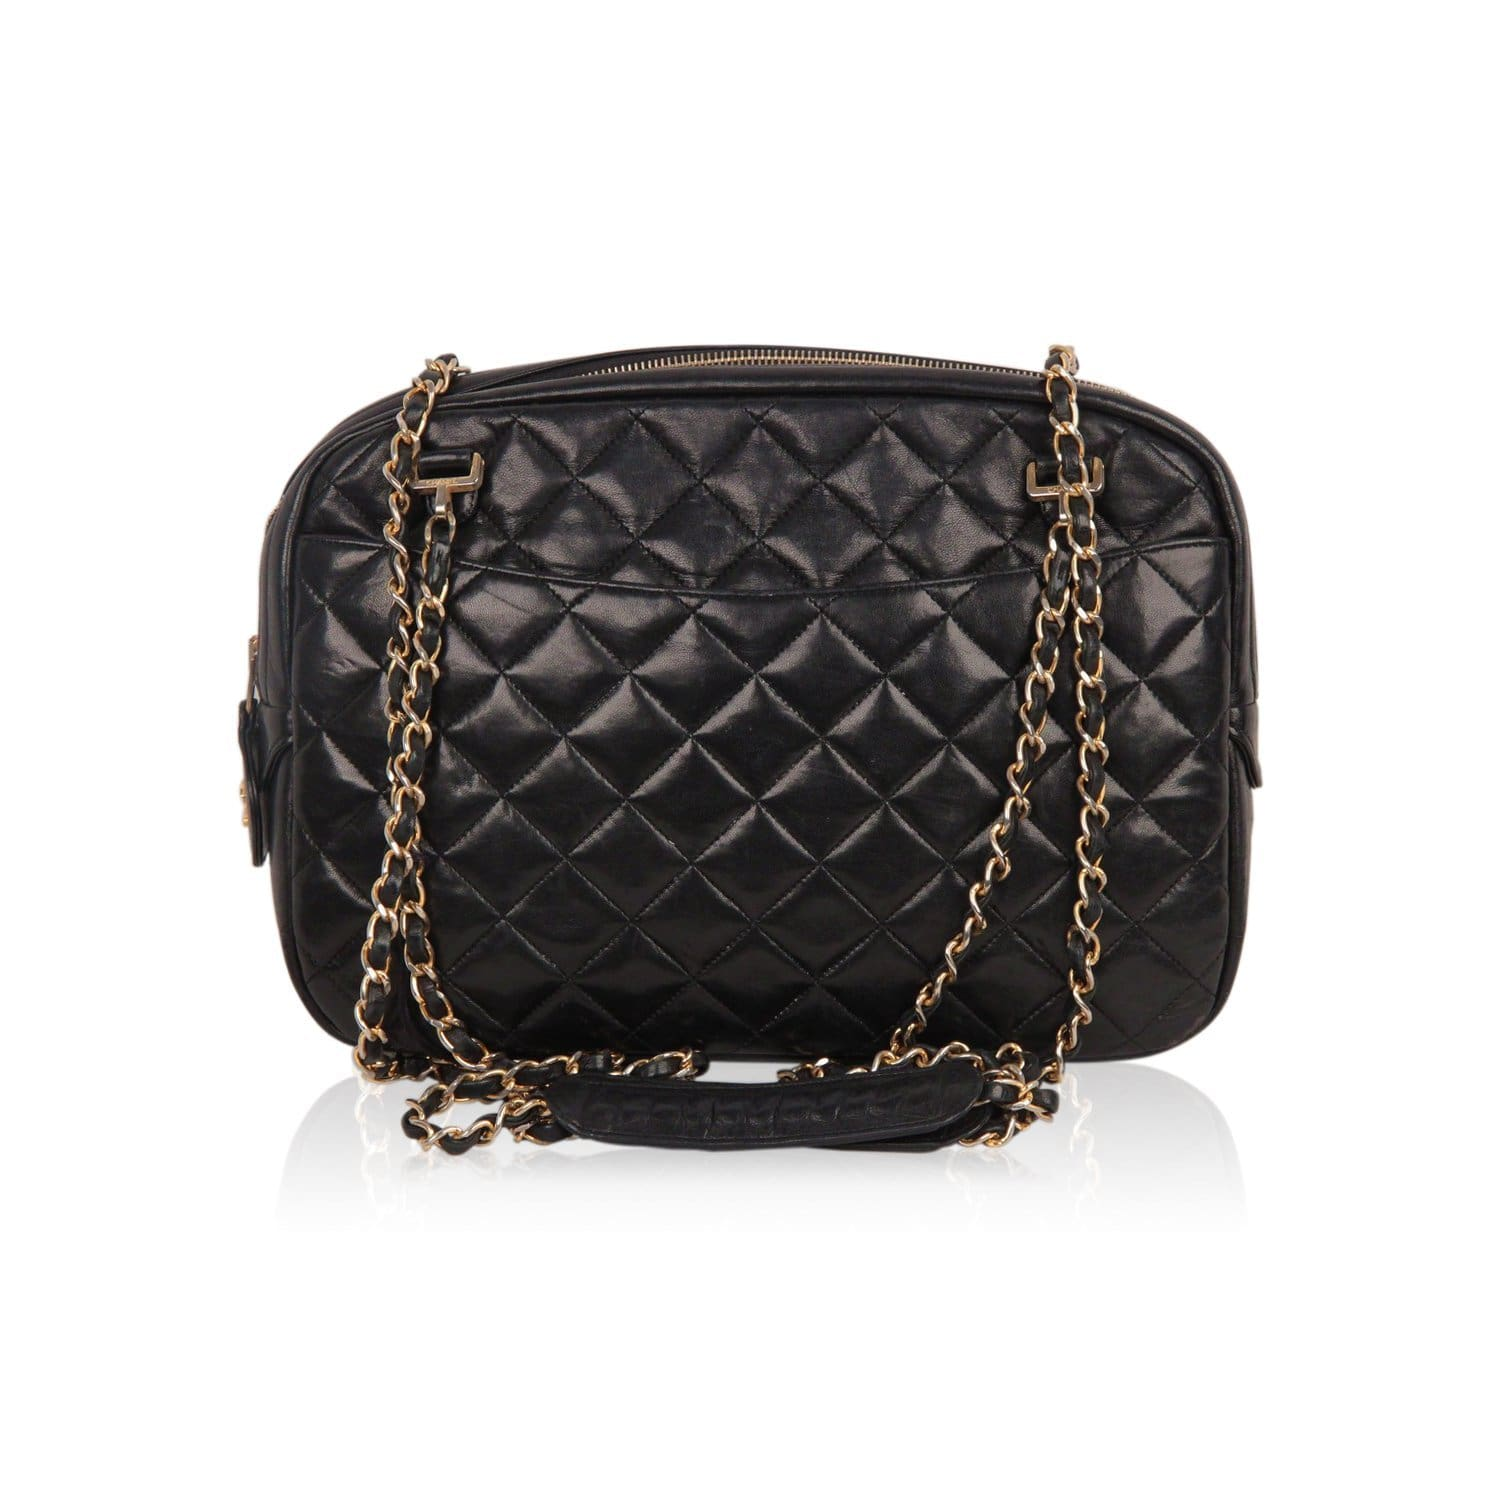 db88a192ae47 Opherty & Ciocci - Chanel Vintage Black Quilted Leather Large Camera ...